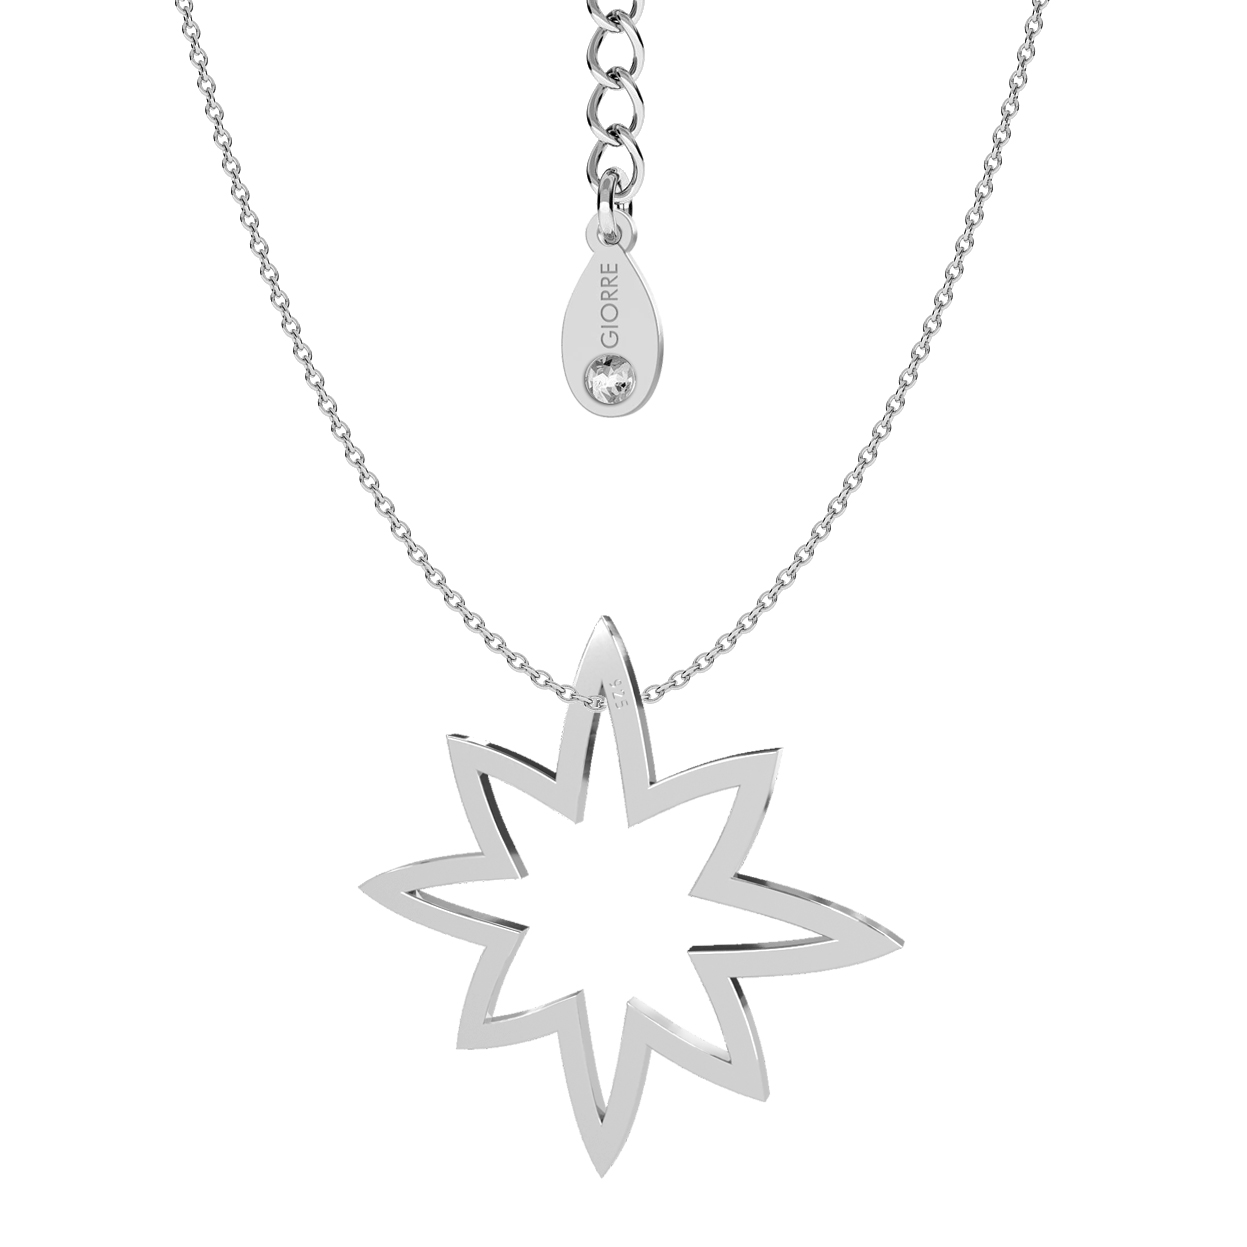 ETOILE COLLIER ARGENT STERLING 925